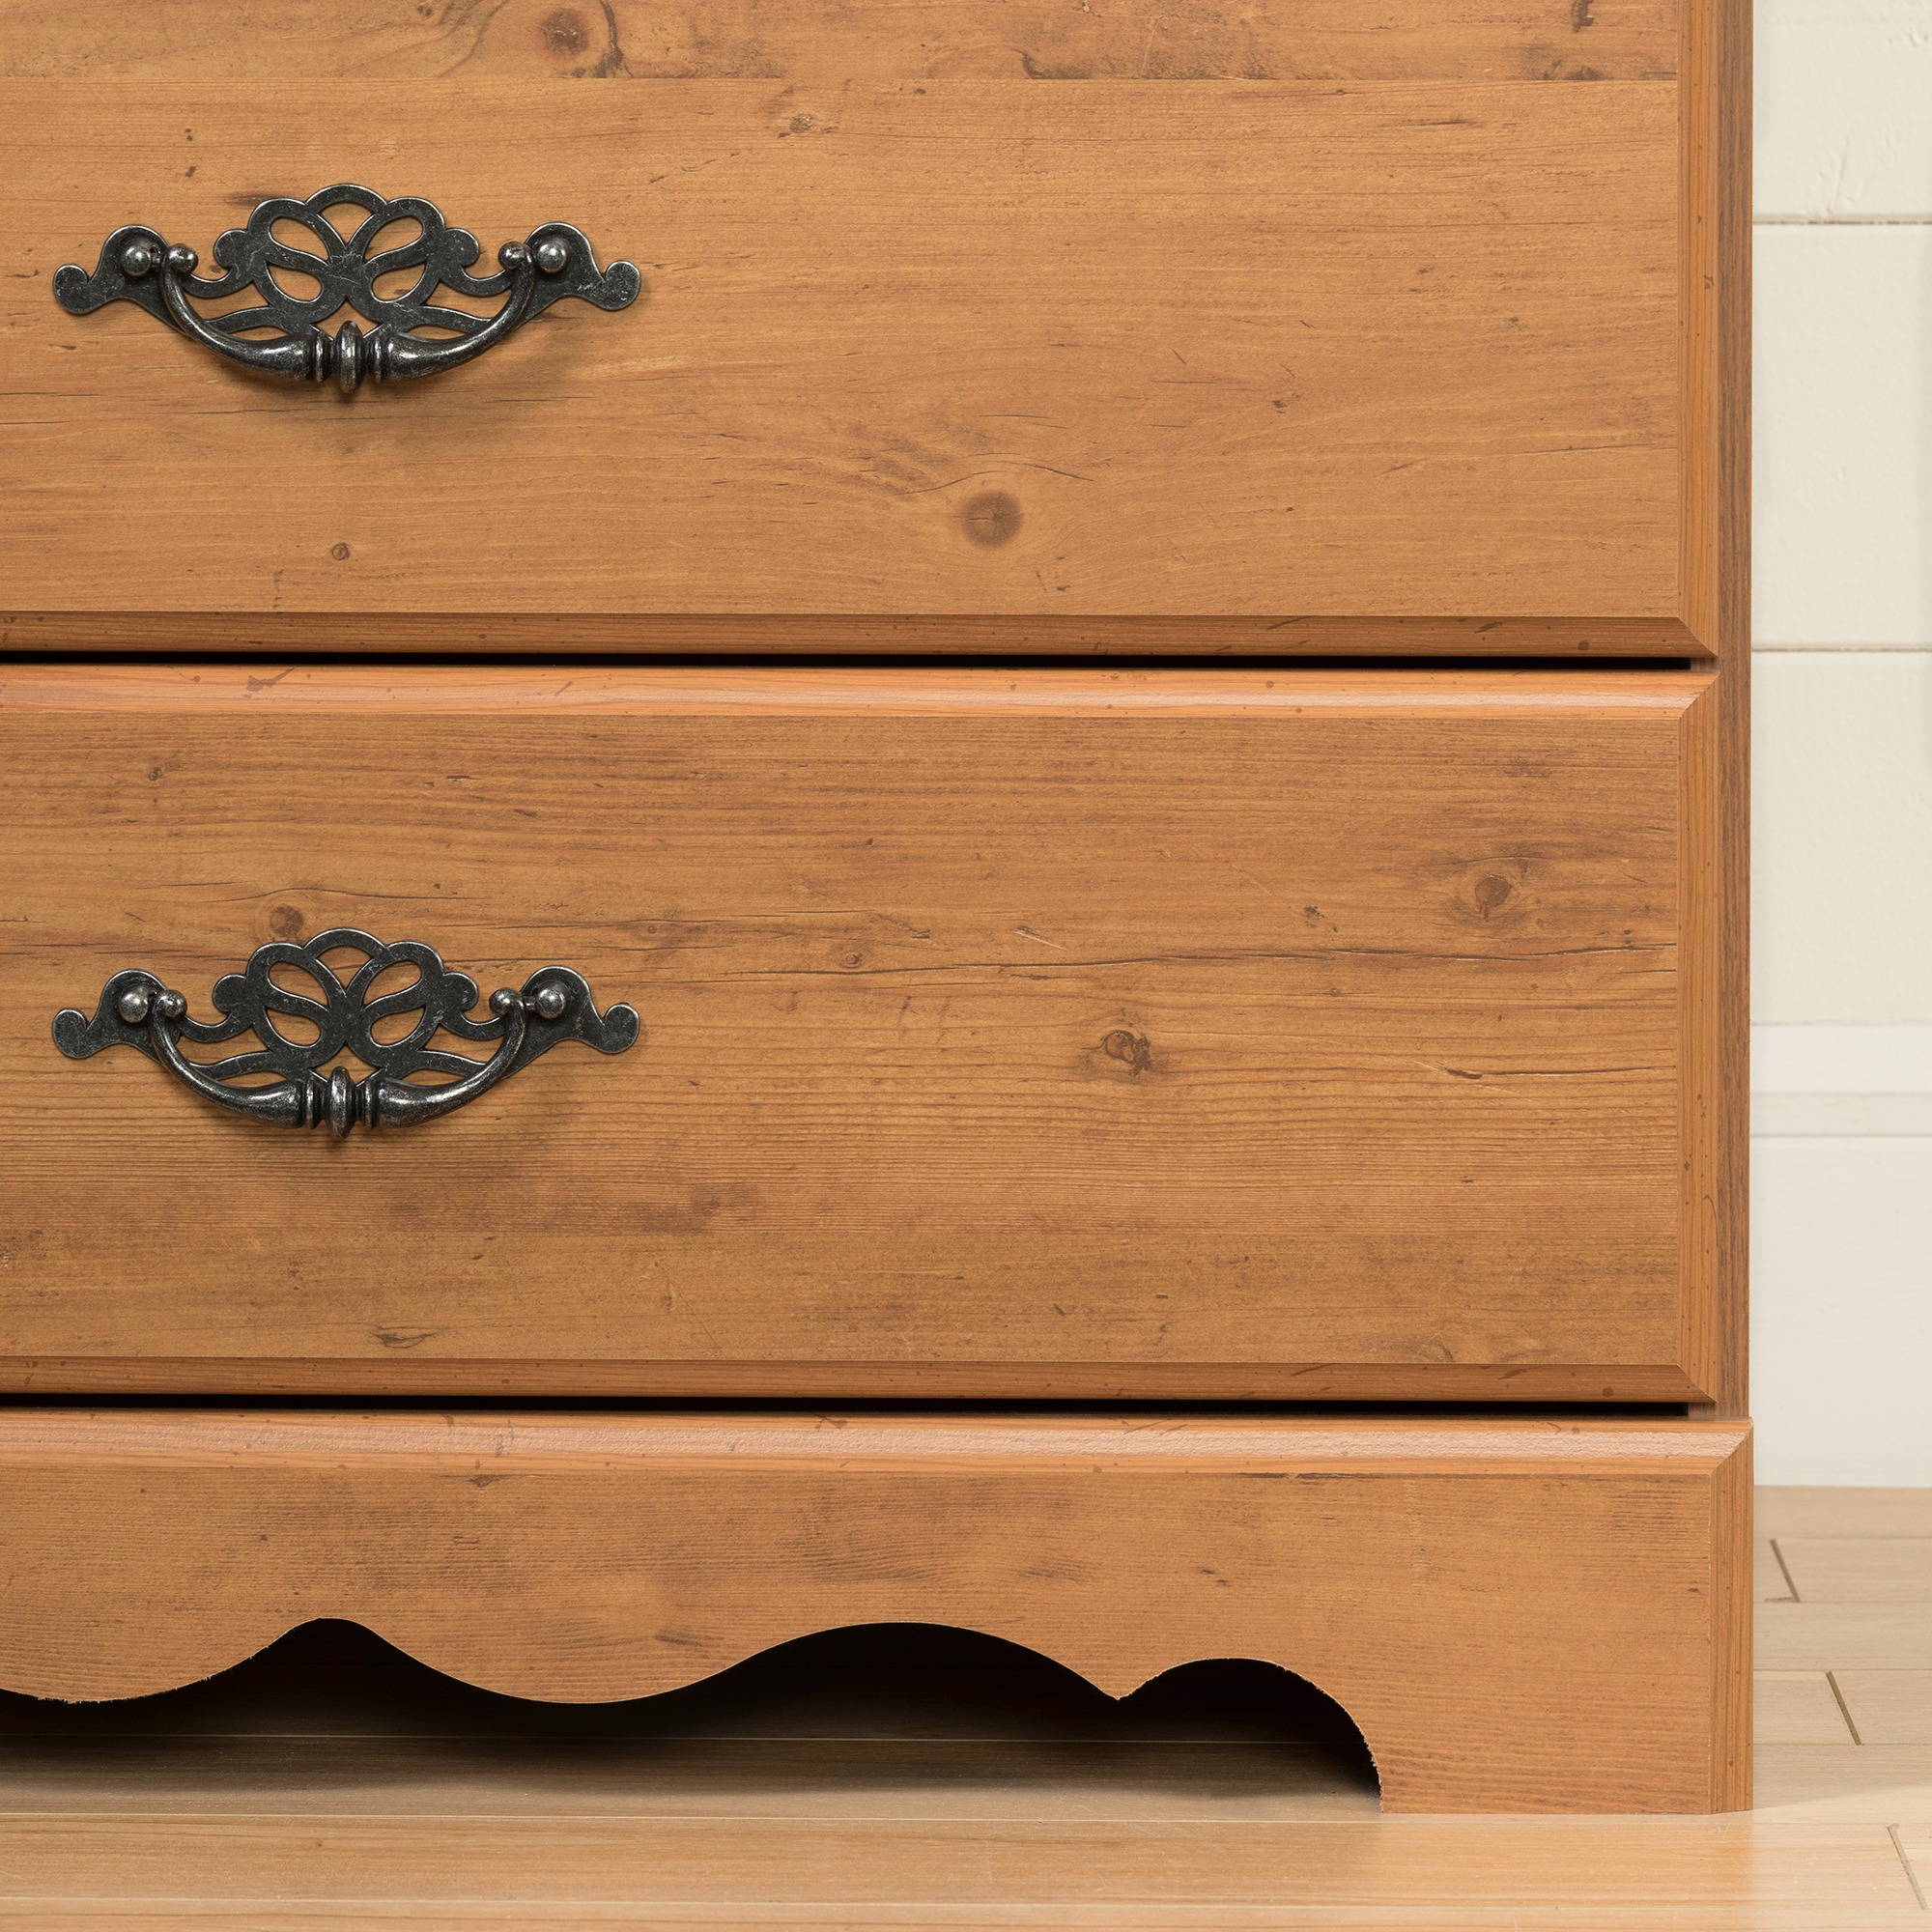 11f4586d55a9 South Shore Prairie 5-Drawer Dresser, Country Pine - Walmart.com